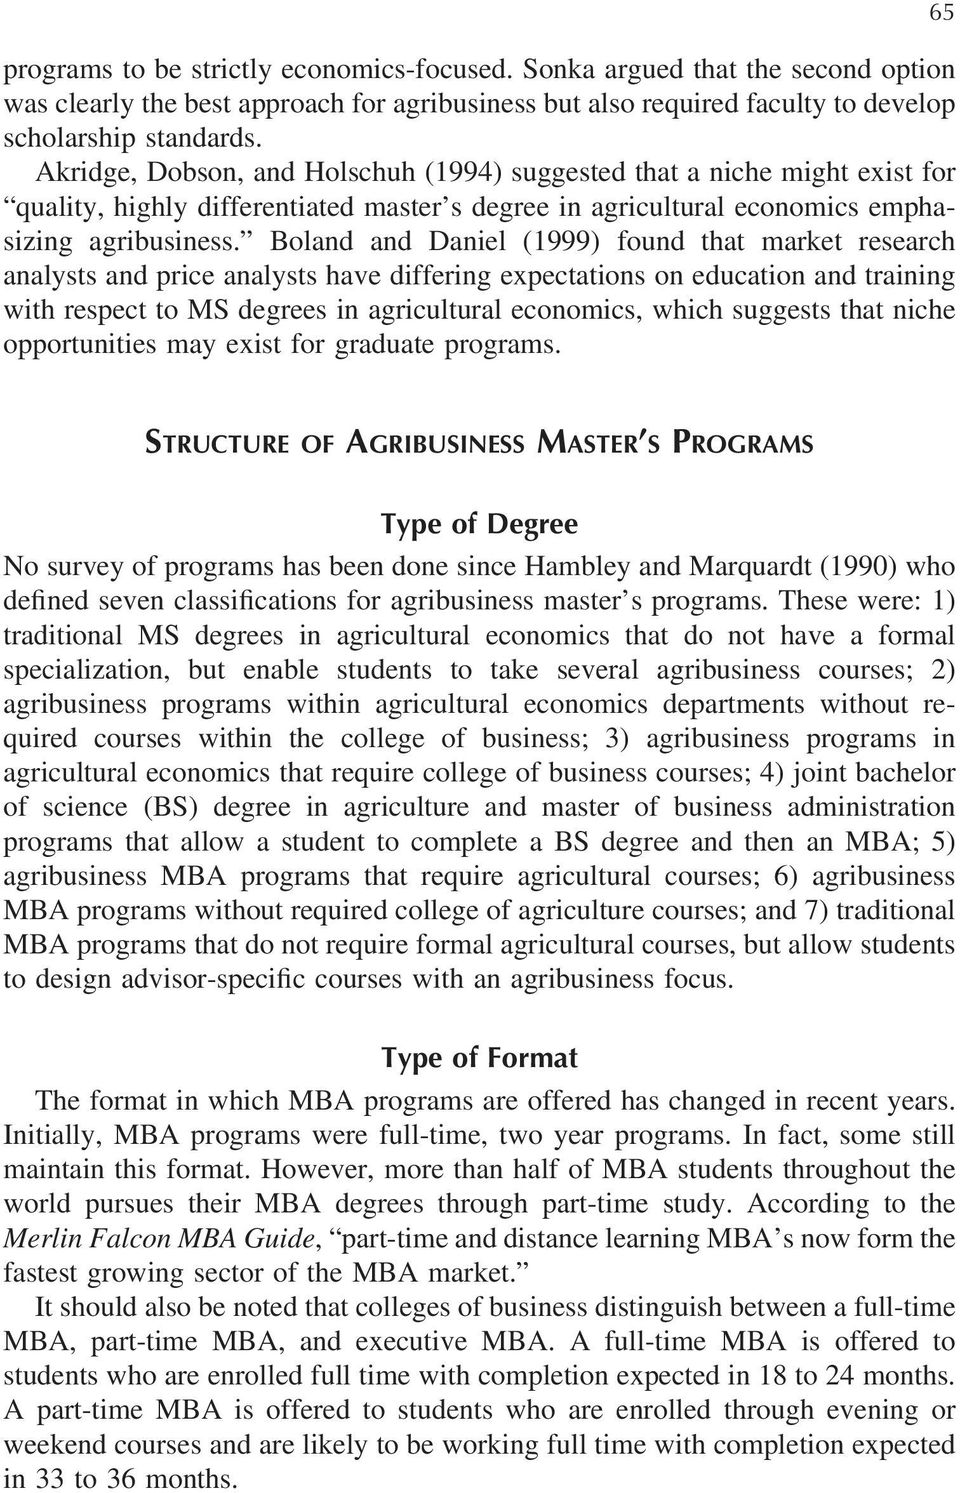 Boland and Daniel (1999) found that market research analysts and price analysts have differing expectations on education and training with respect to MS degrees in agricultural economics, which